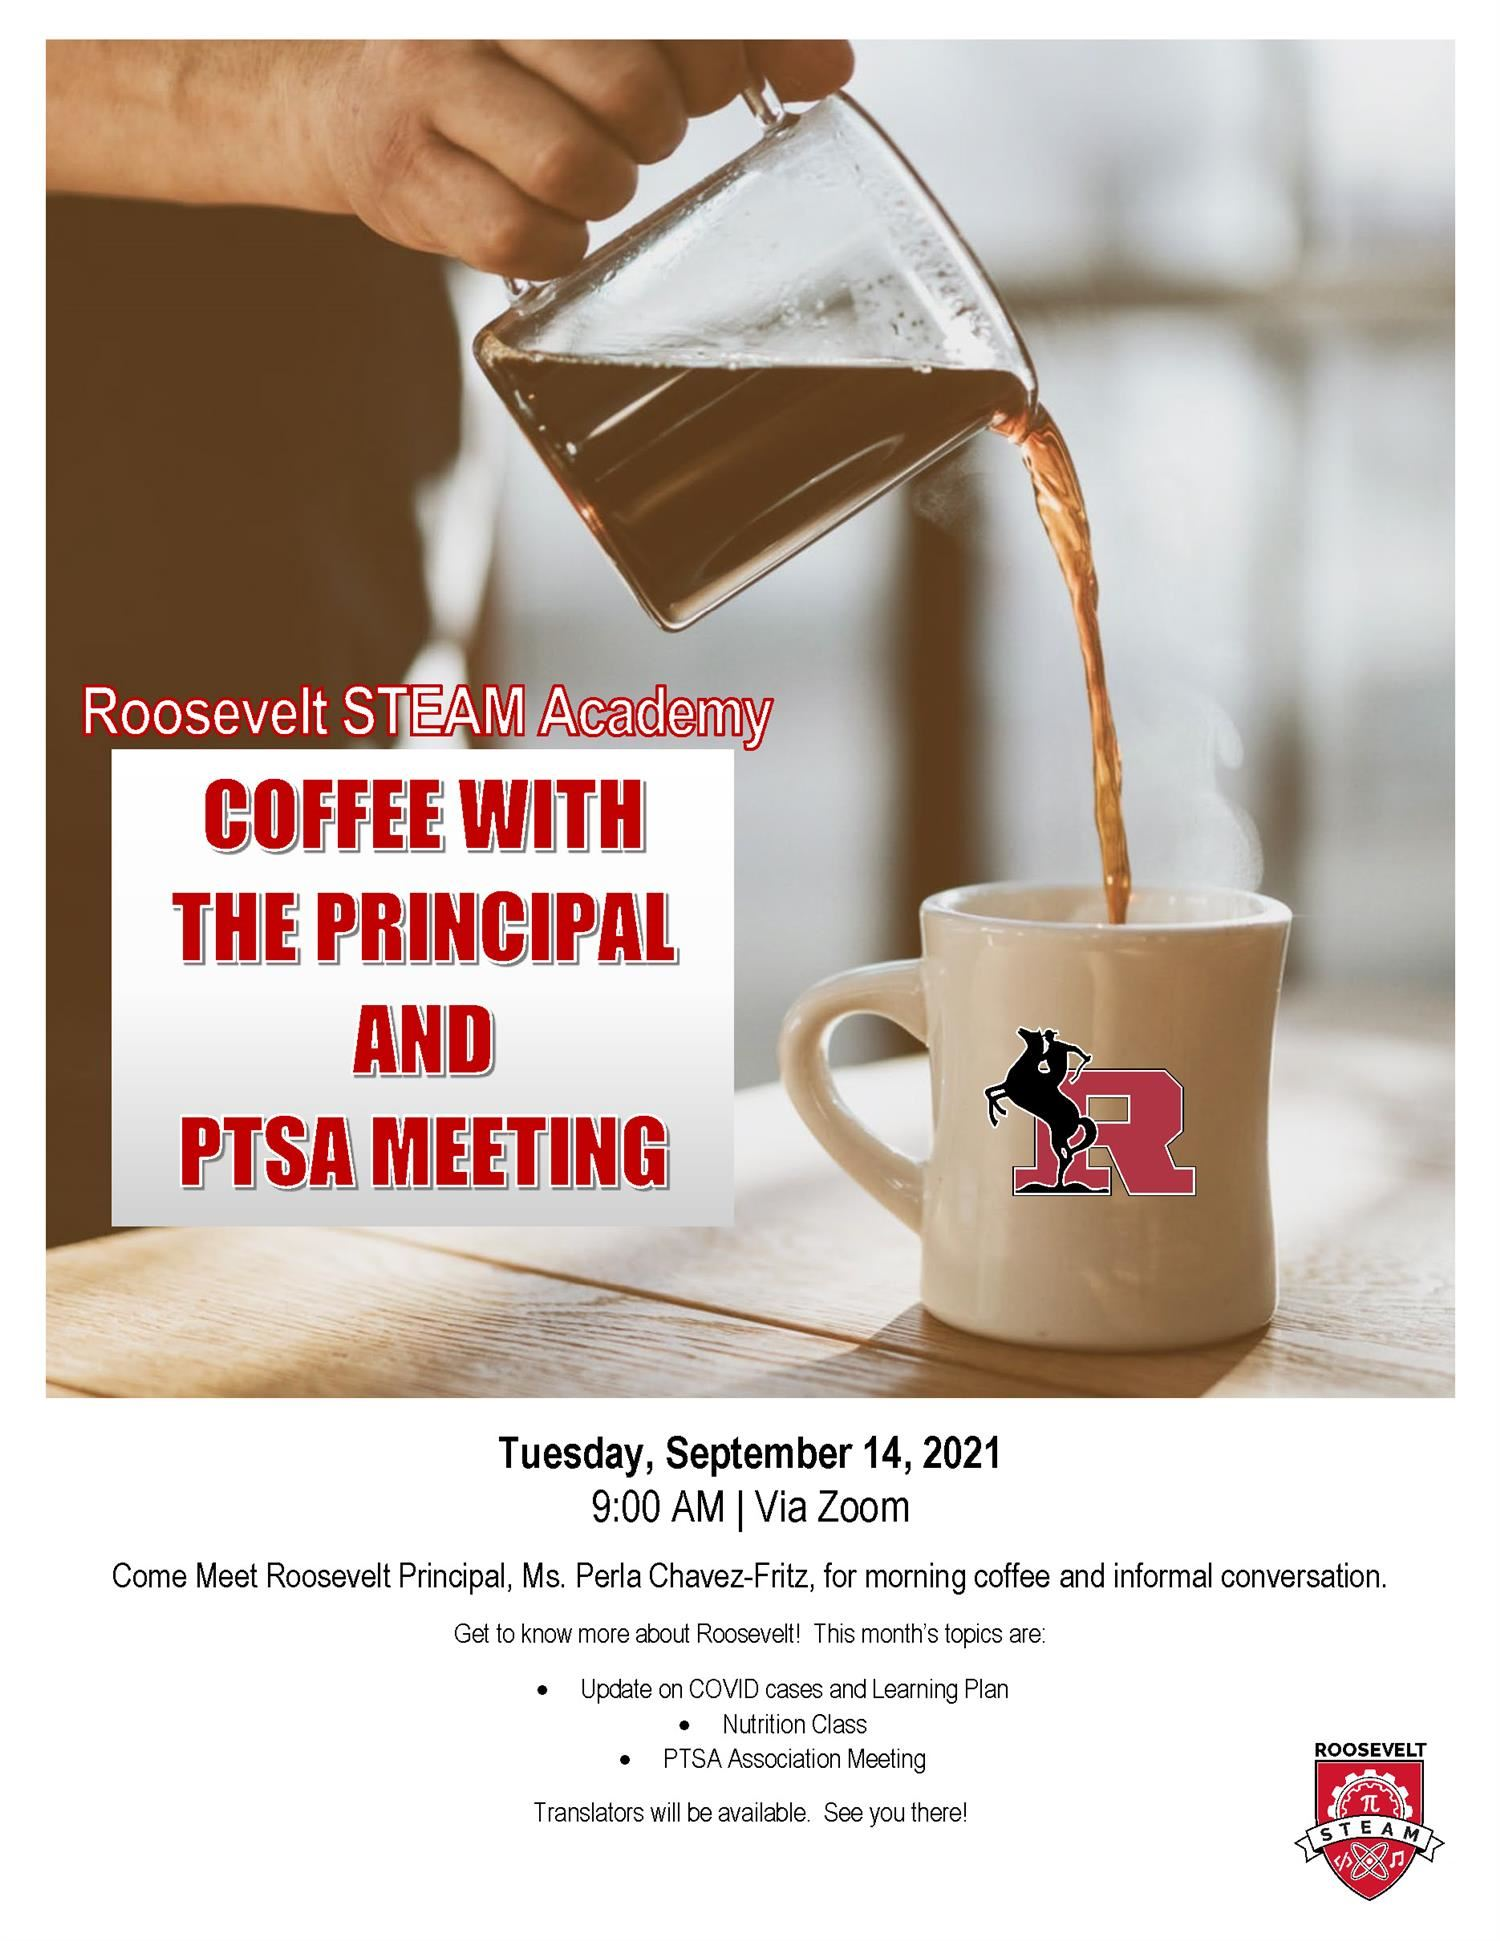 Come Meet Roosevelt Principal, Dr. Kyle Bruich, for morning coffee and informal conversation.